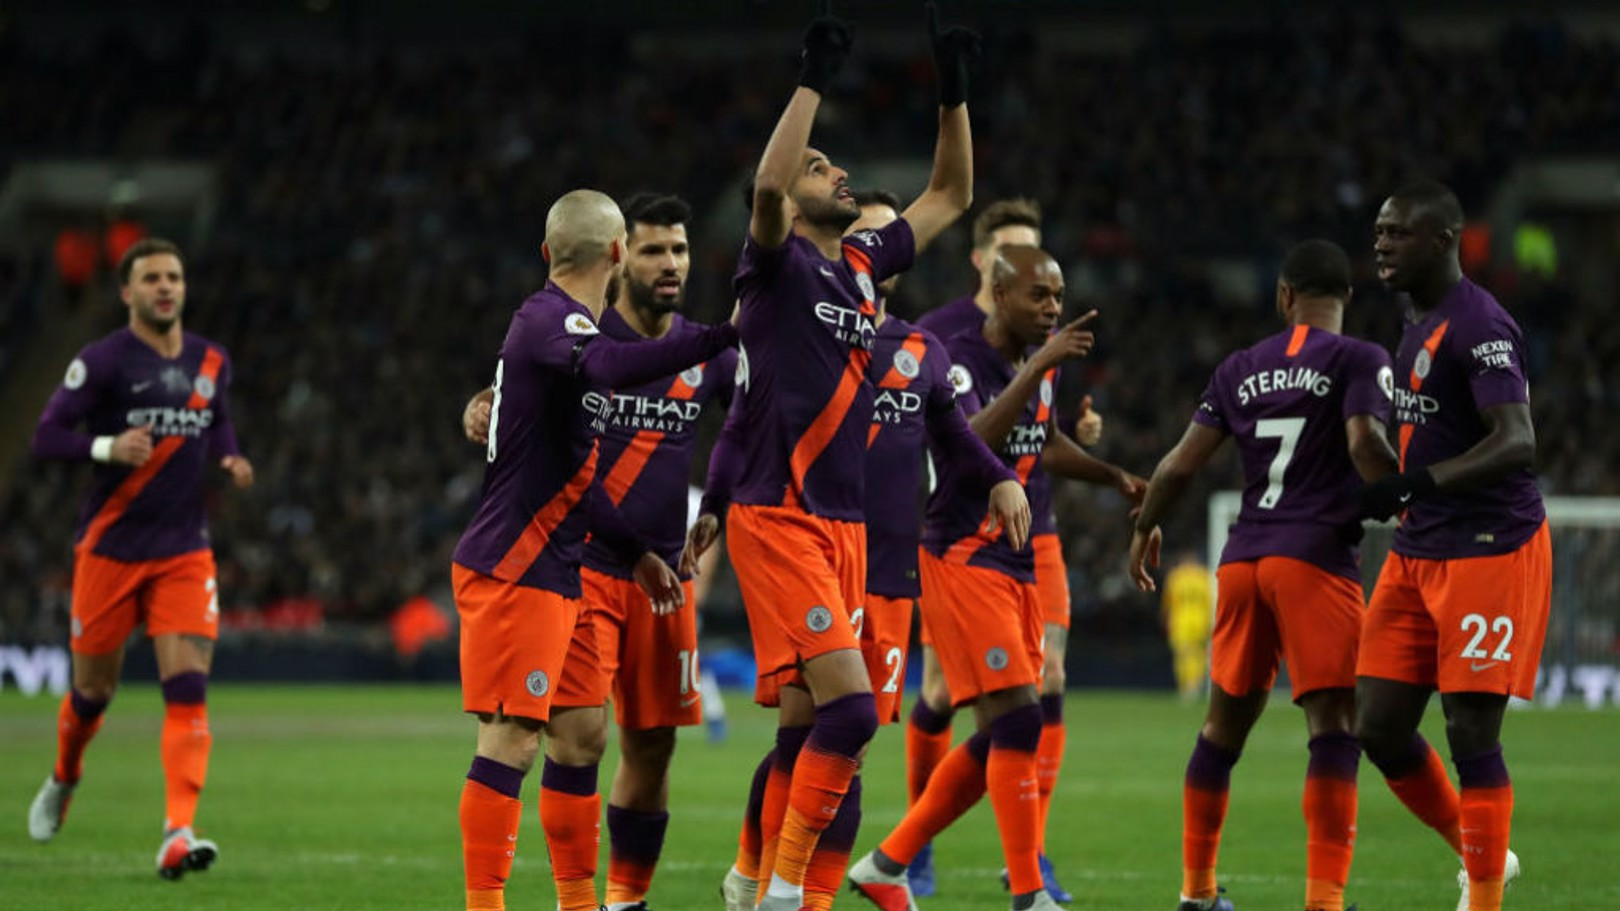 SQUAD: City celebrate after Mahrez bags his fifth goal for the club.